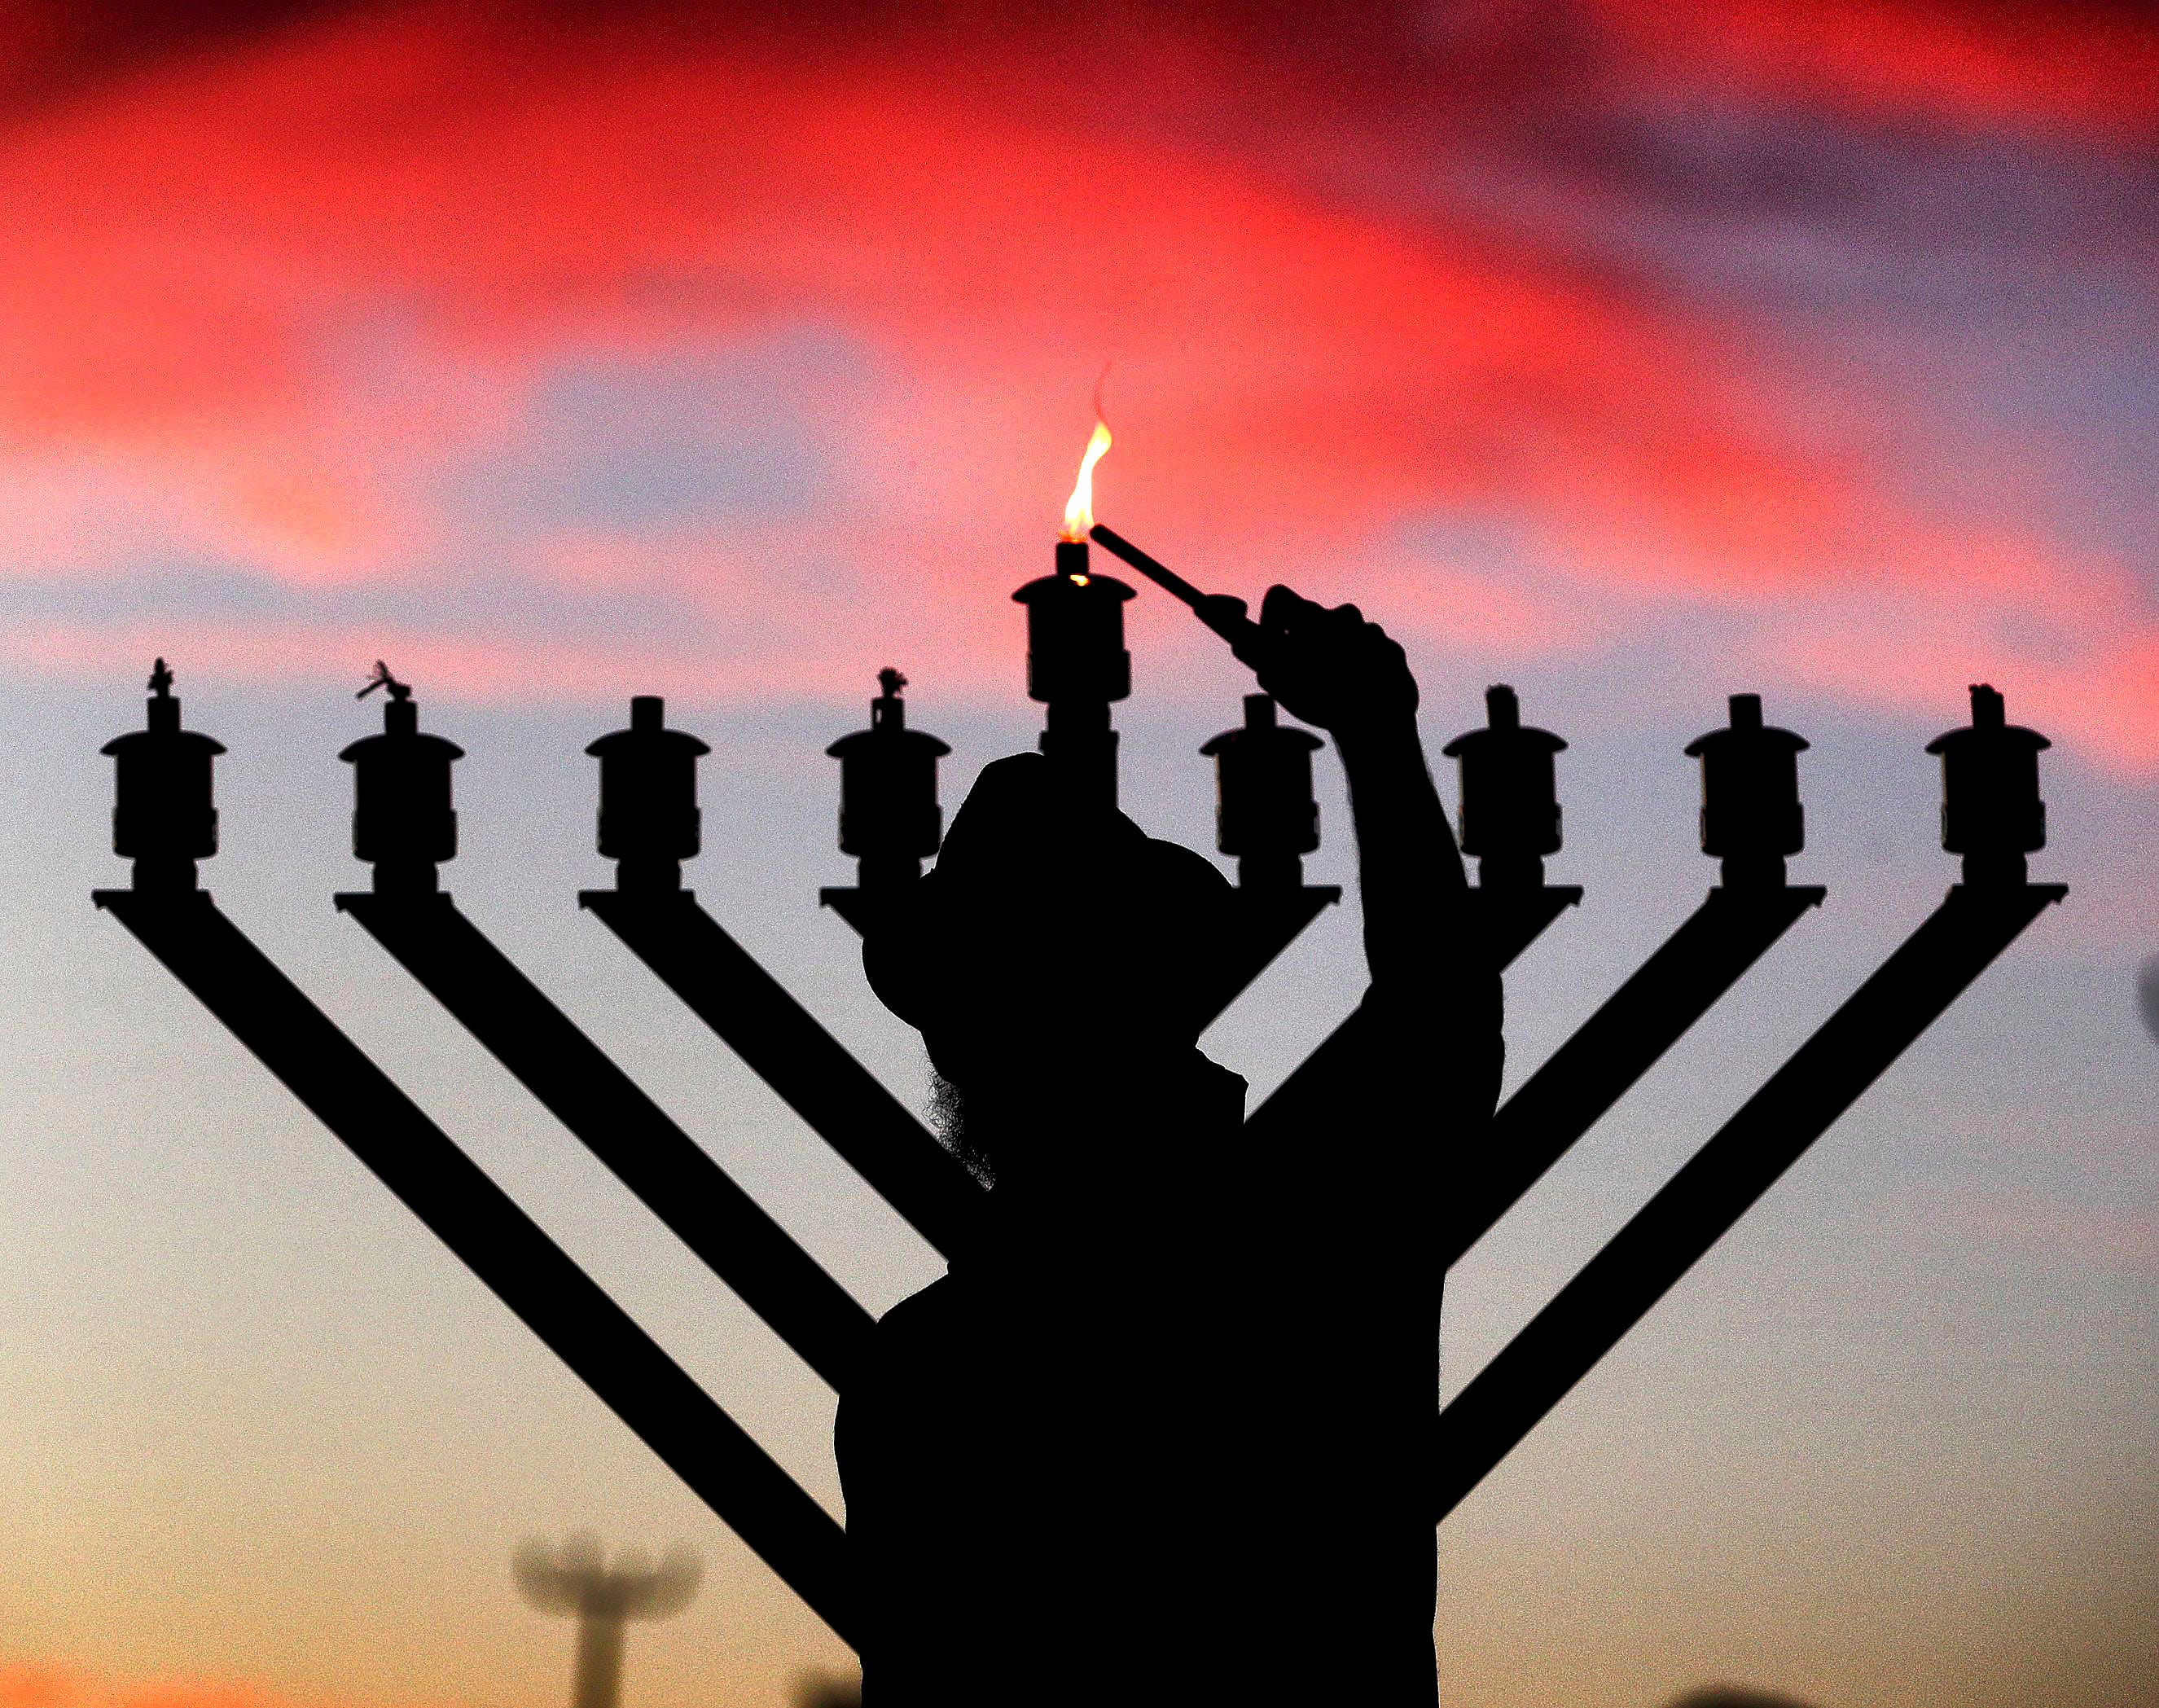 Staying Apart, Together: The Hanukkah lights shine bright, even from afar